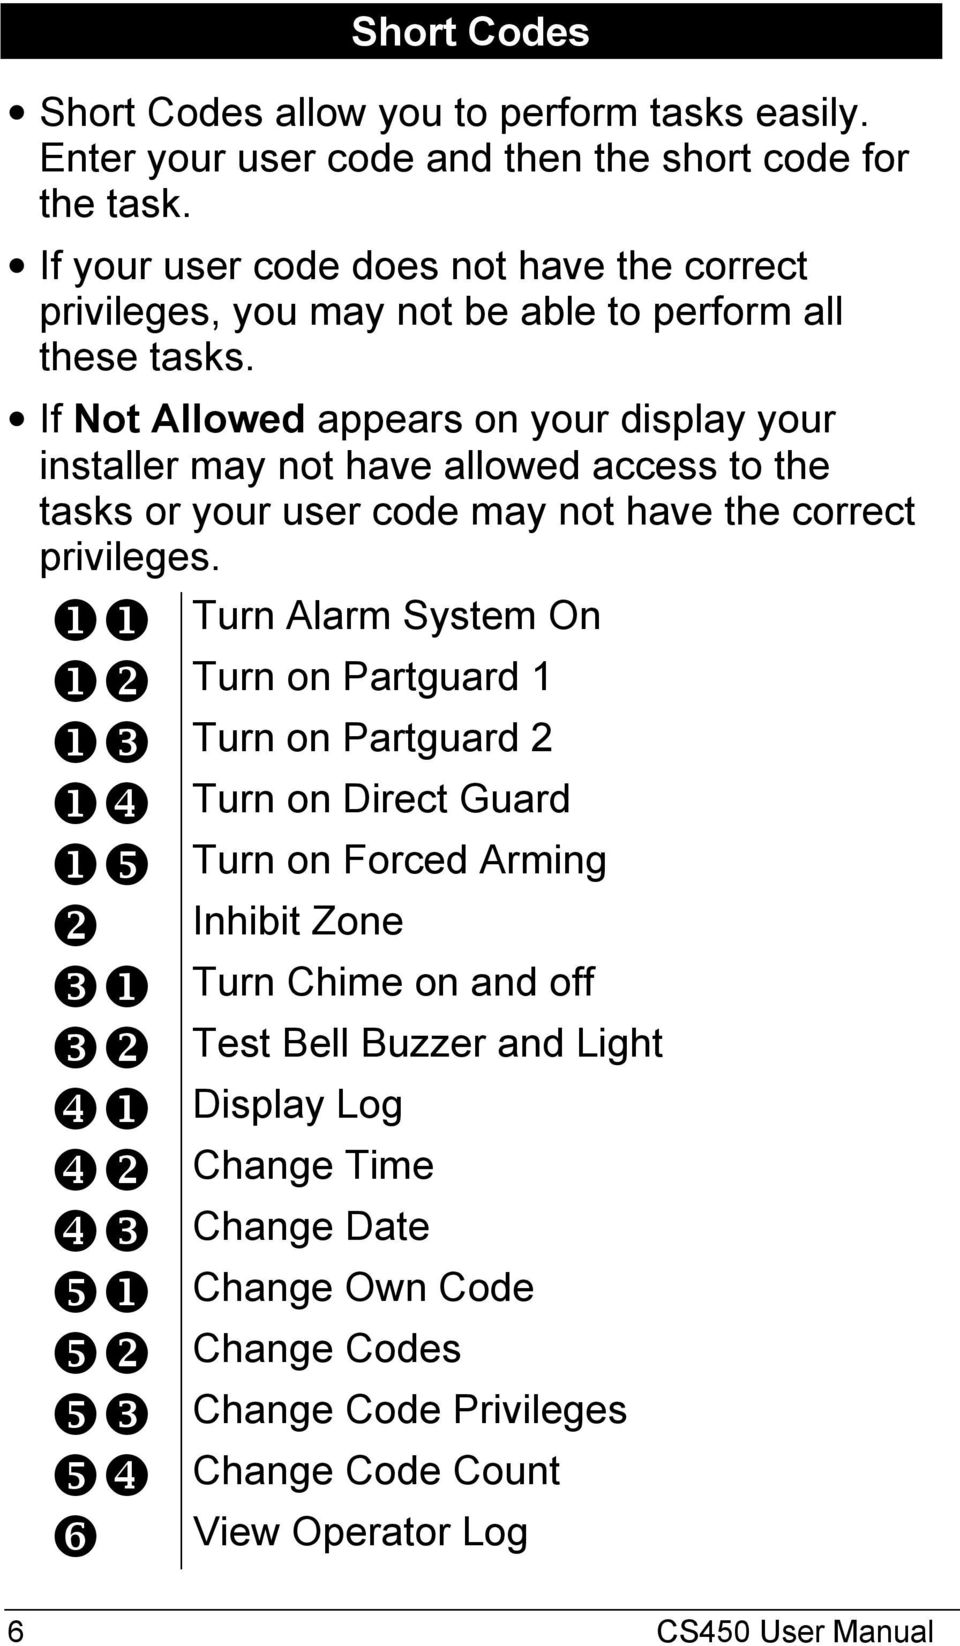 If Not Allowed appears on your display your installer may not have allowed access to the tasks or your user code may not have the correct privileges.